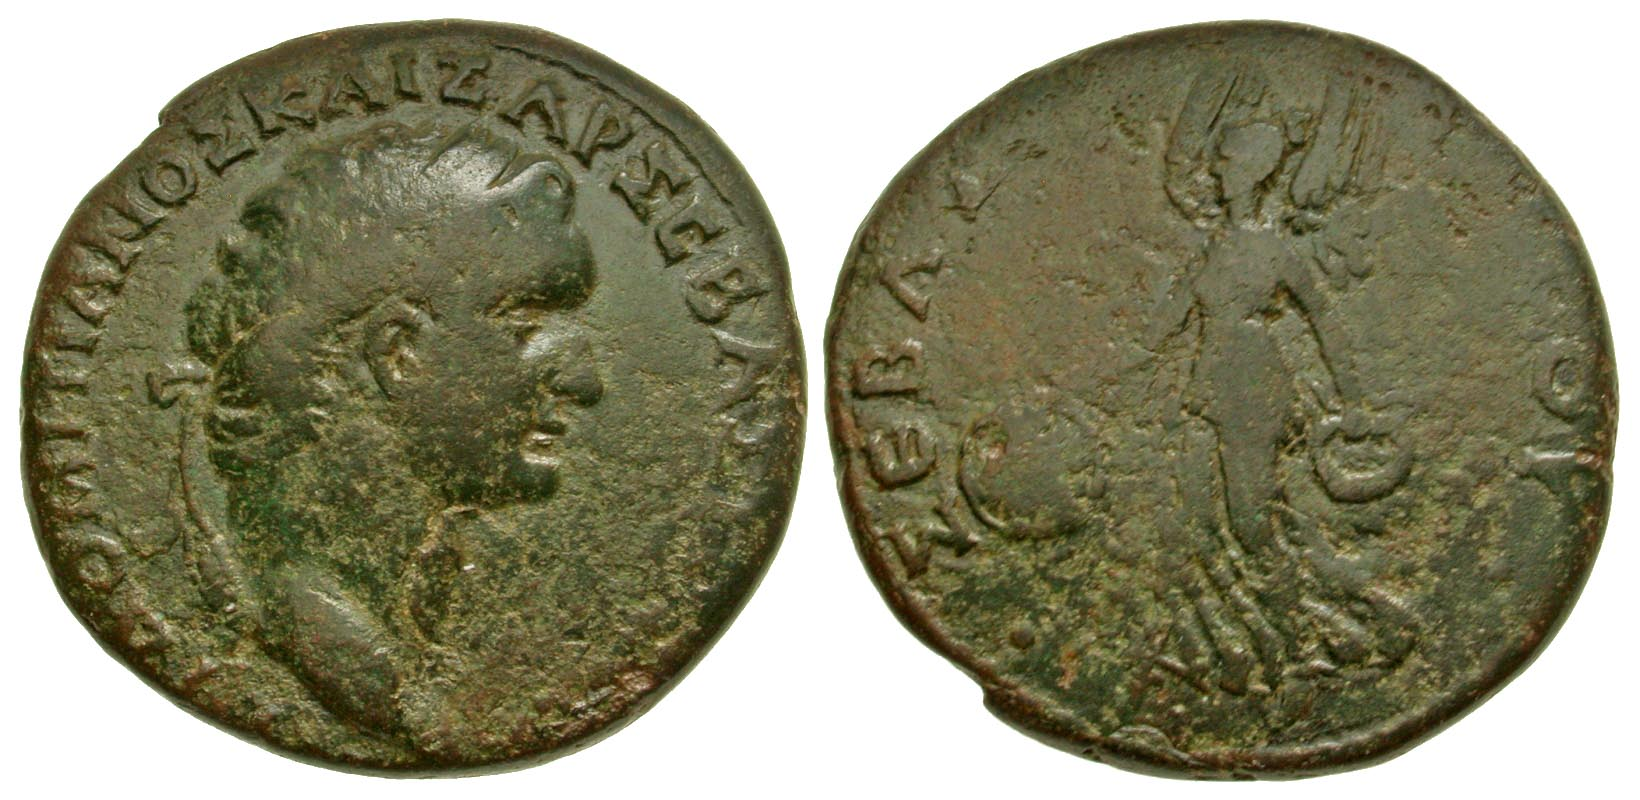 Bithynia, Uncertain mint. Domitian. A.D. 81-96. Æ 27. Extremely rare - perhaps the third known.